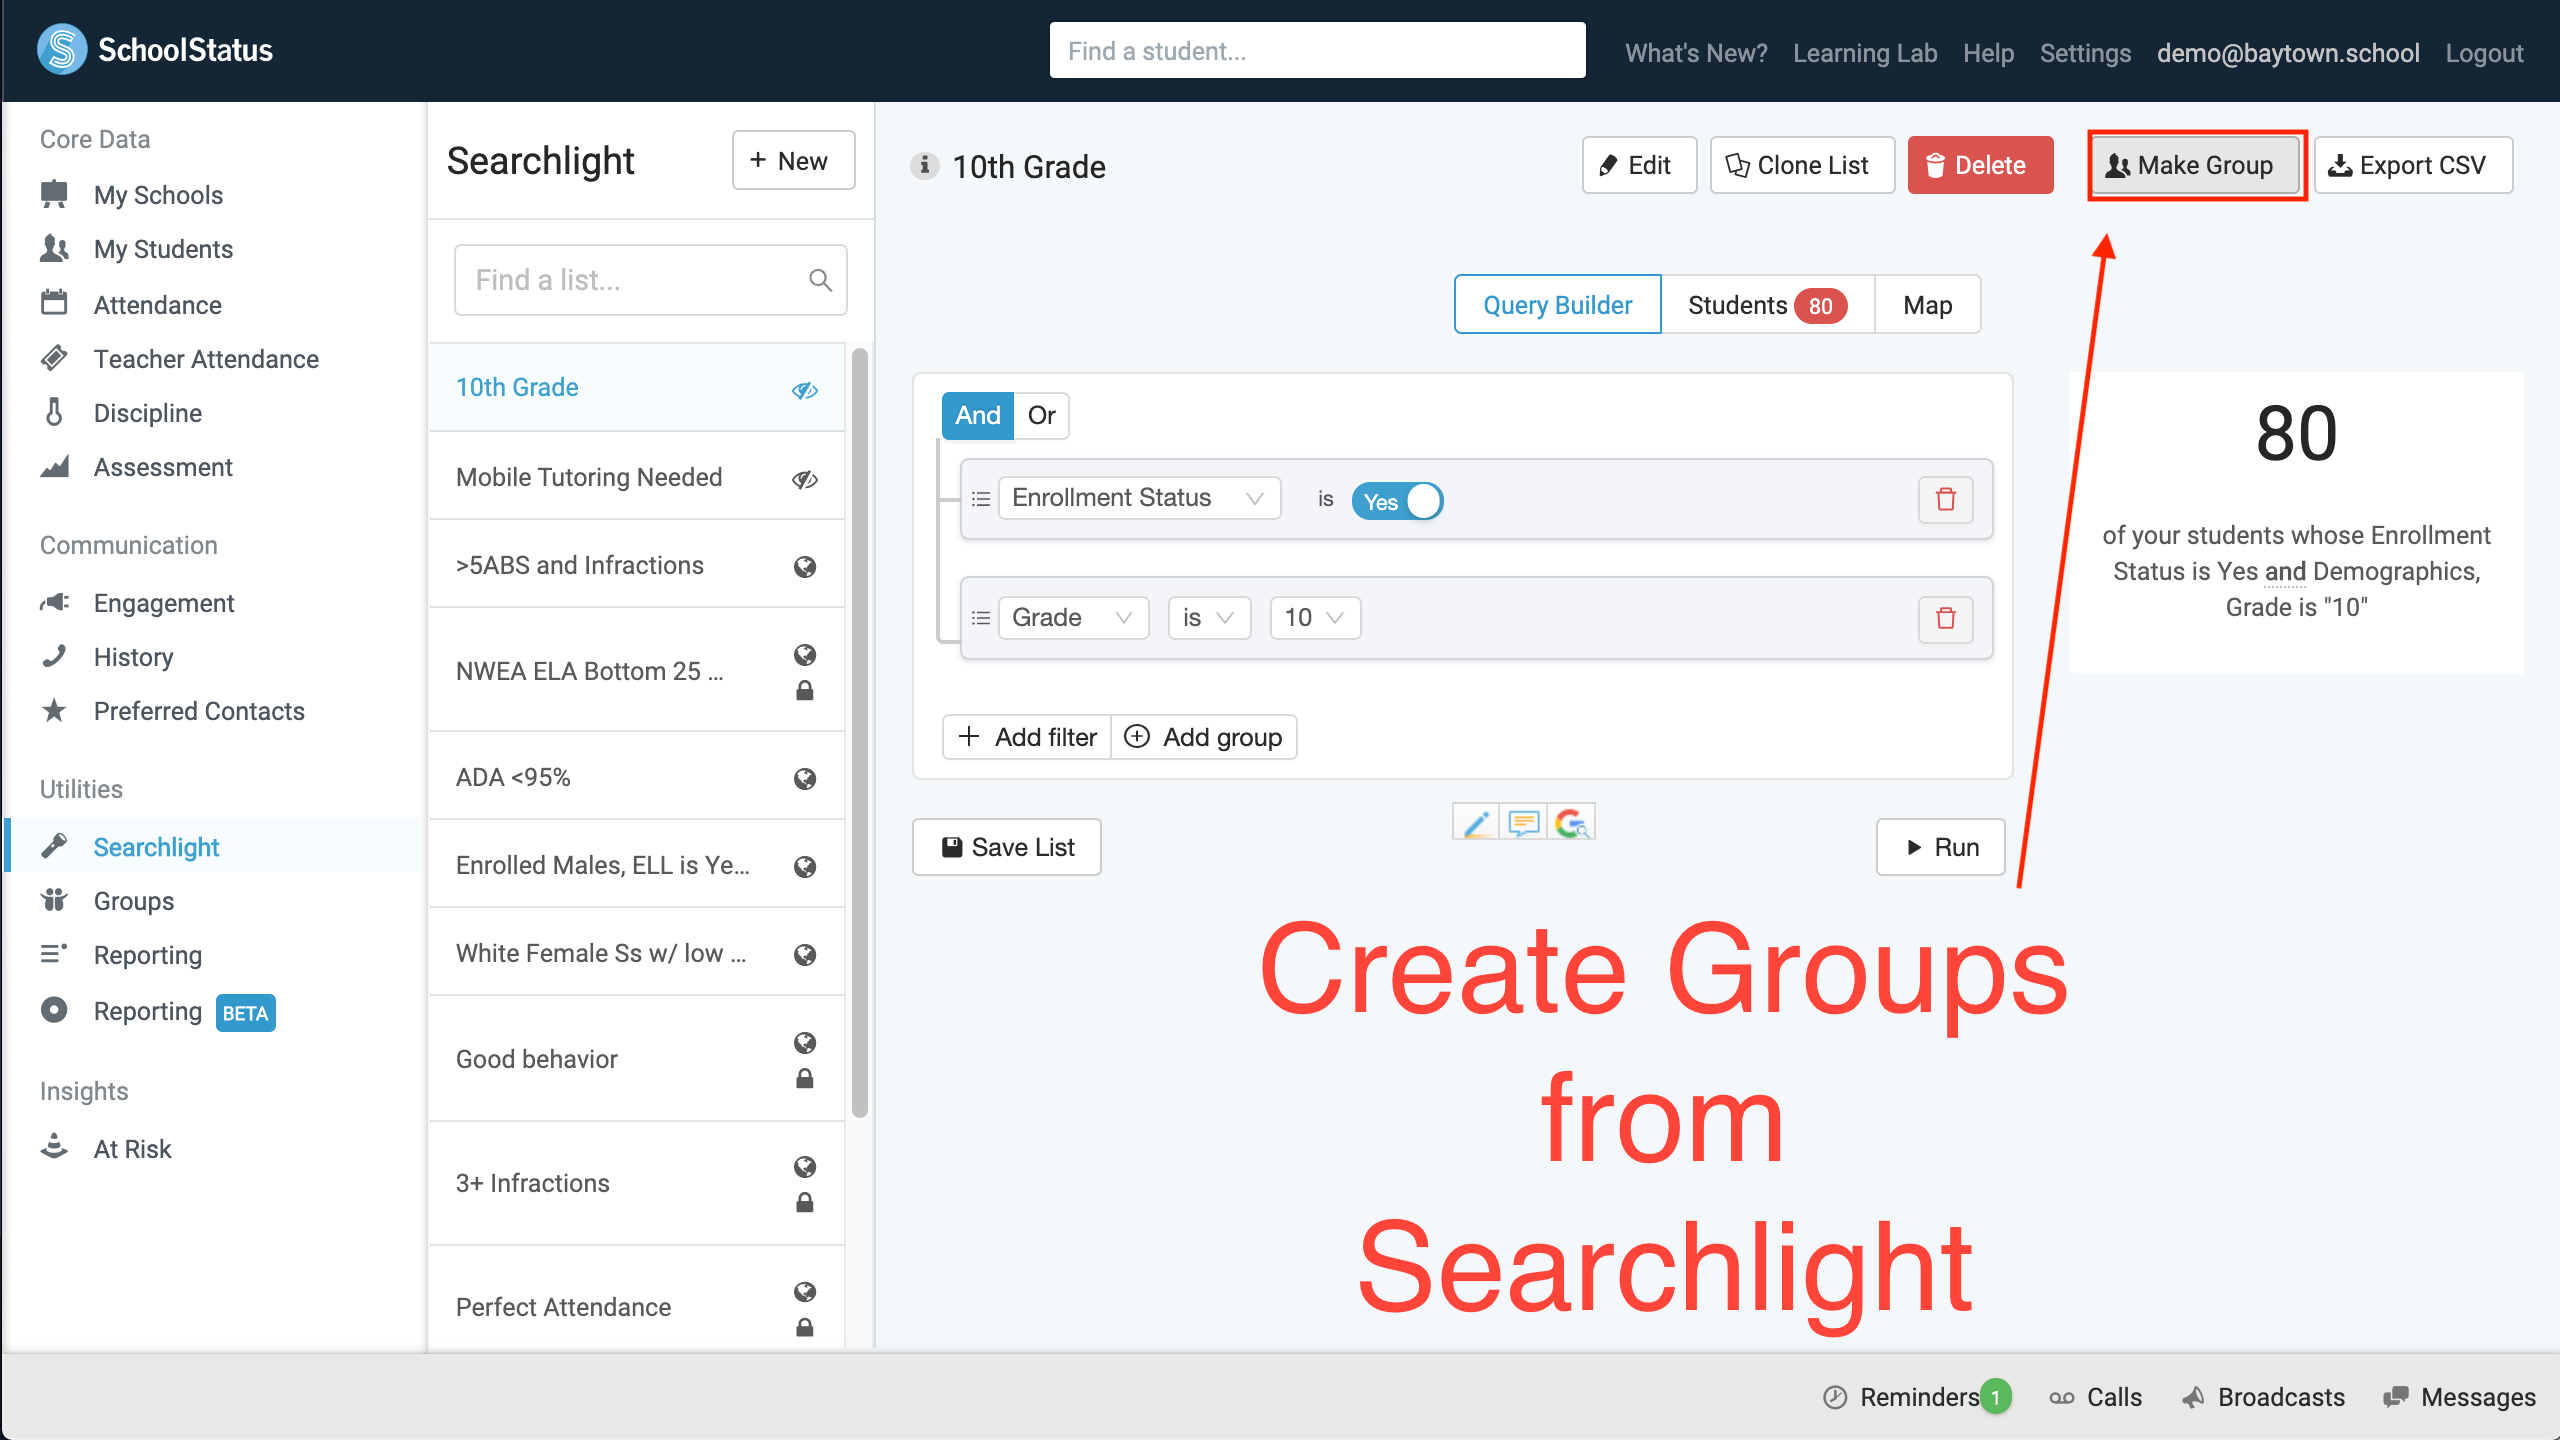 Groups_From_Searchlight.png